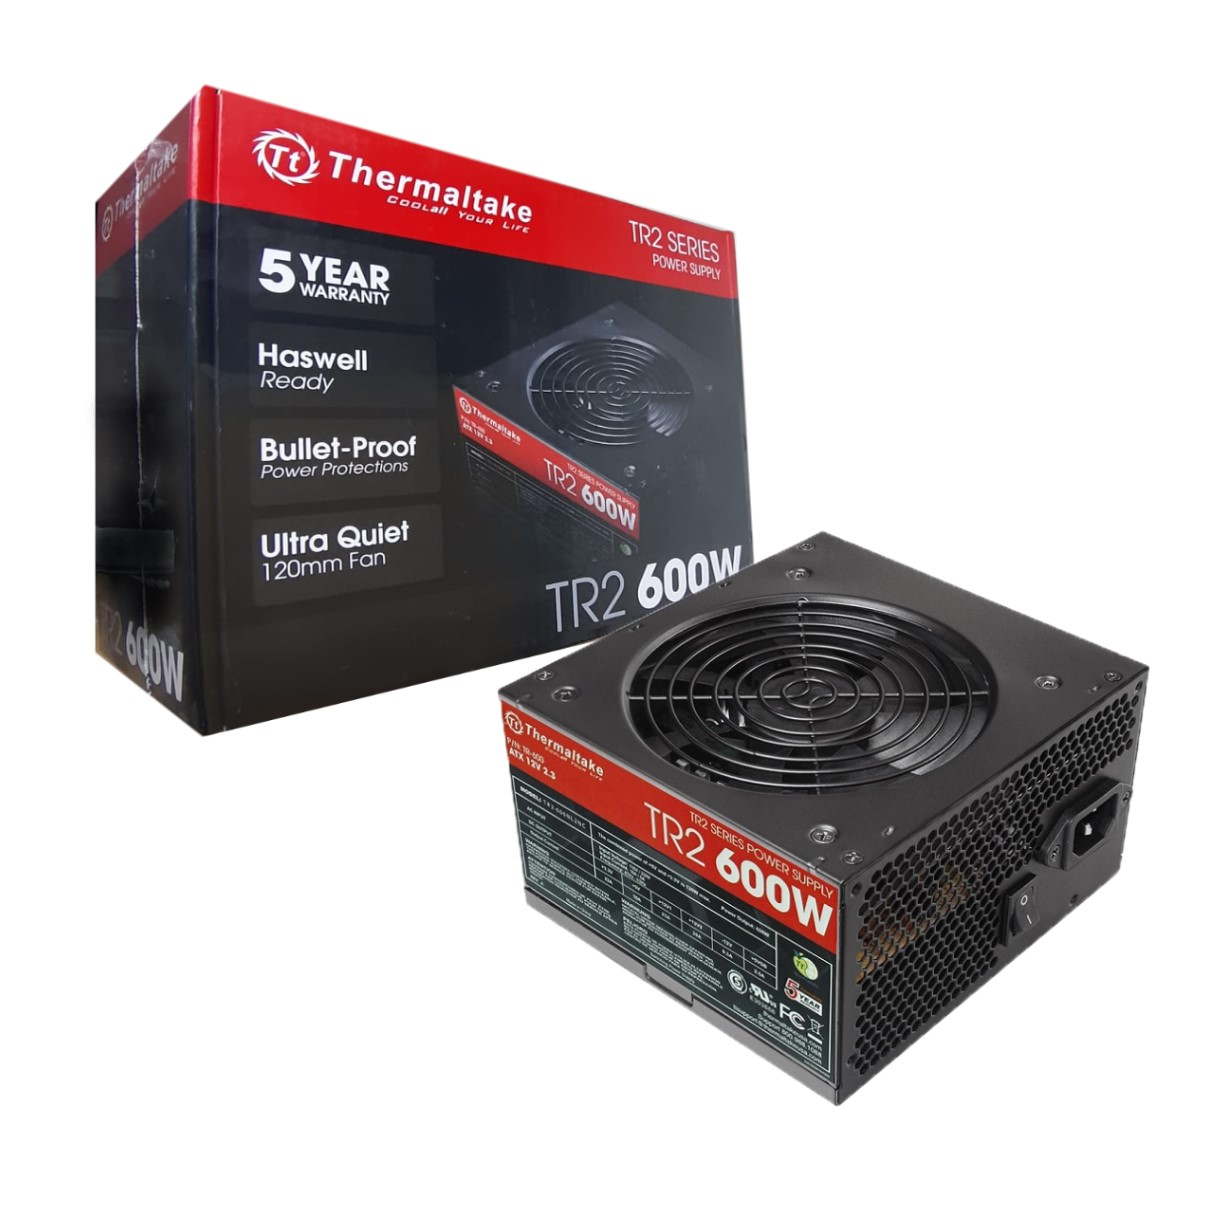 FUENTE REAL 600W TR2 - THERMALTAKE